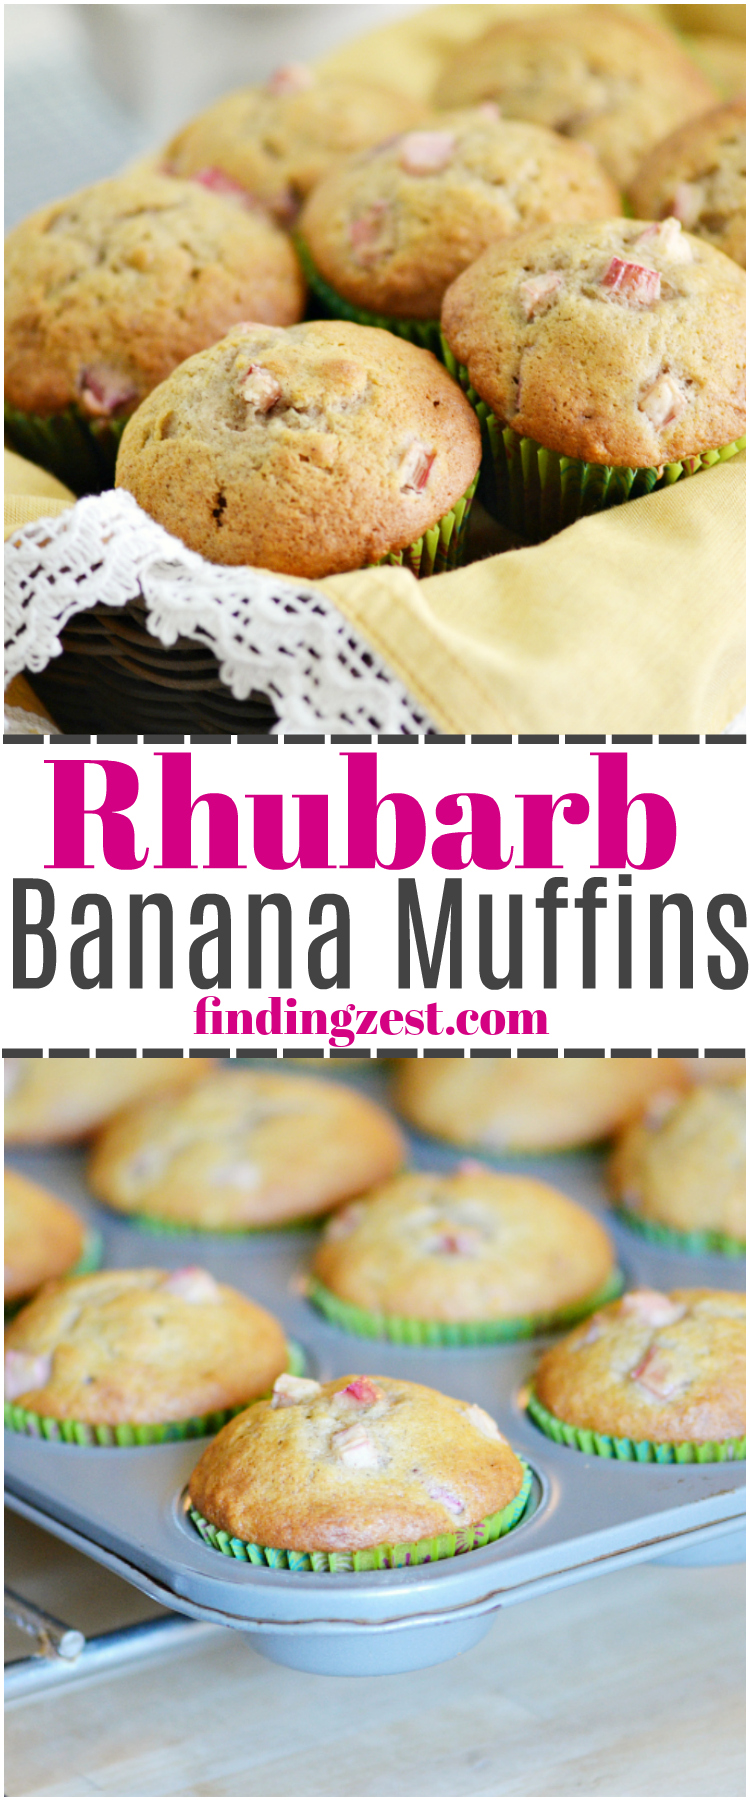 These homemade Rhubarb Banana Muffins offer the tartness of rhubarb and sweetness of banana in every delicious bite! Enjoy rhubarb for breakfast with this fresh rhubarb muffin!